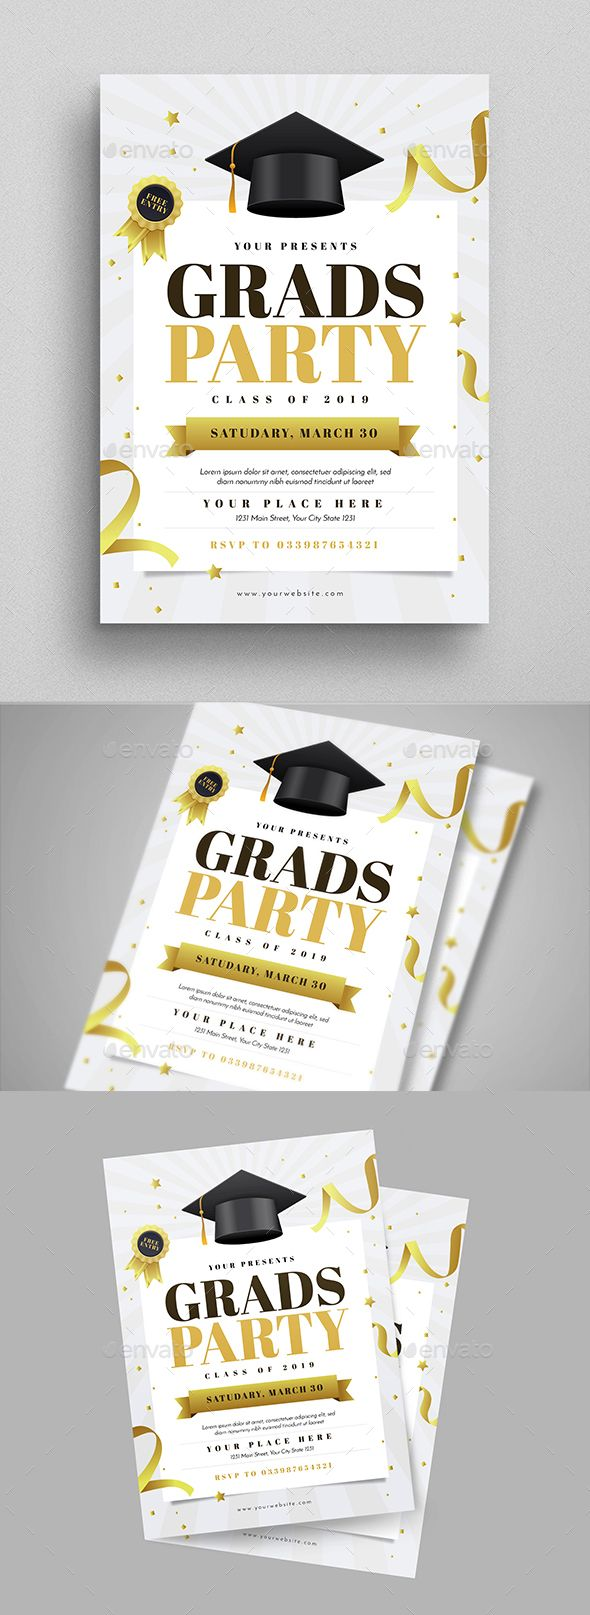 Graduation Party Flyer | Party flyer, Event flyers and Flyer template